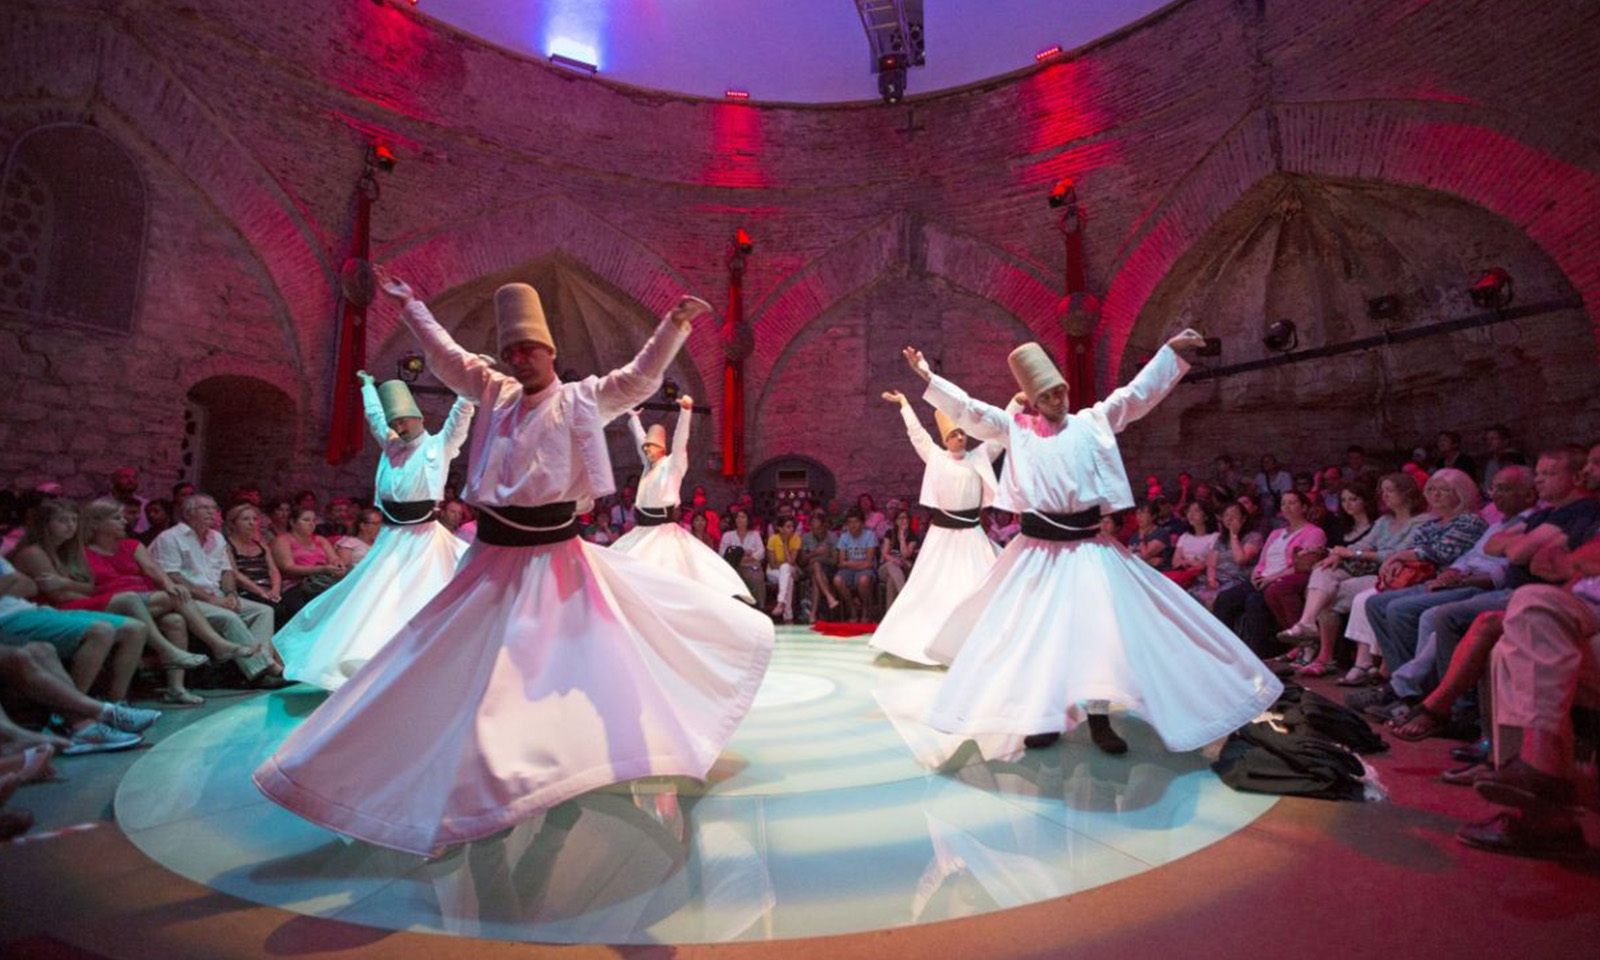 HodjaPasha Whirling Ceremony